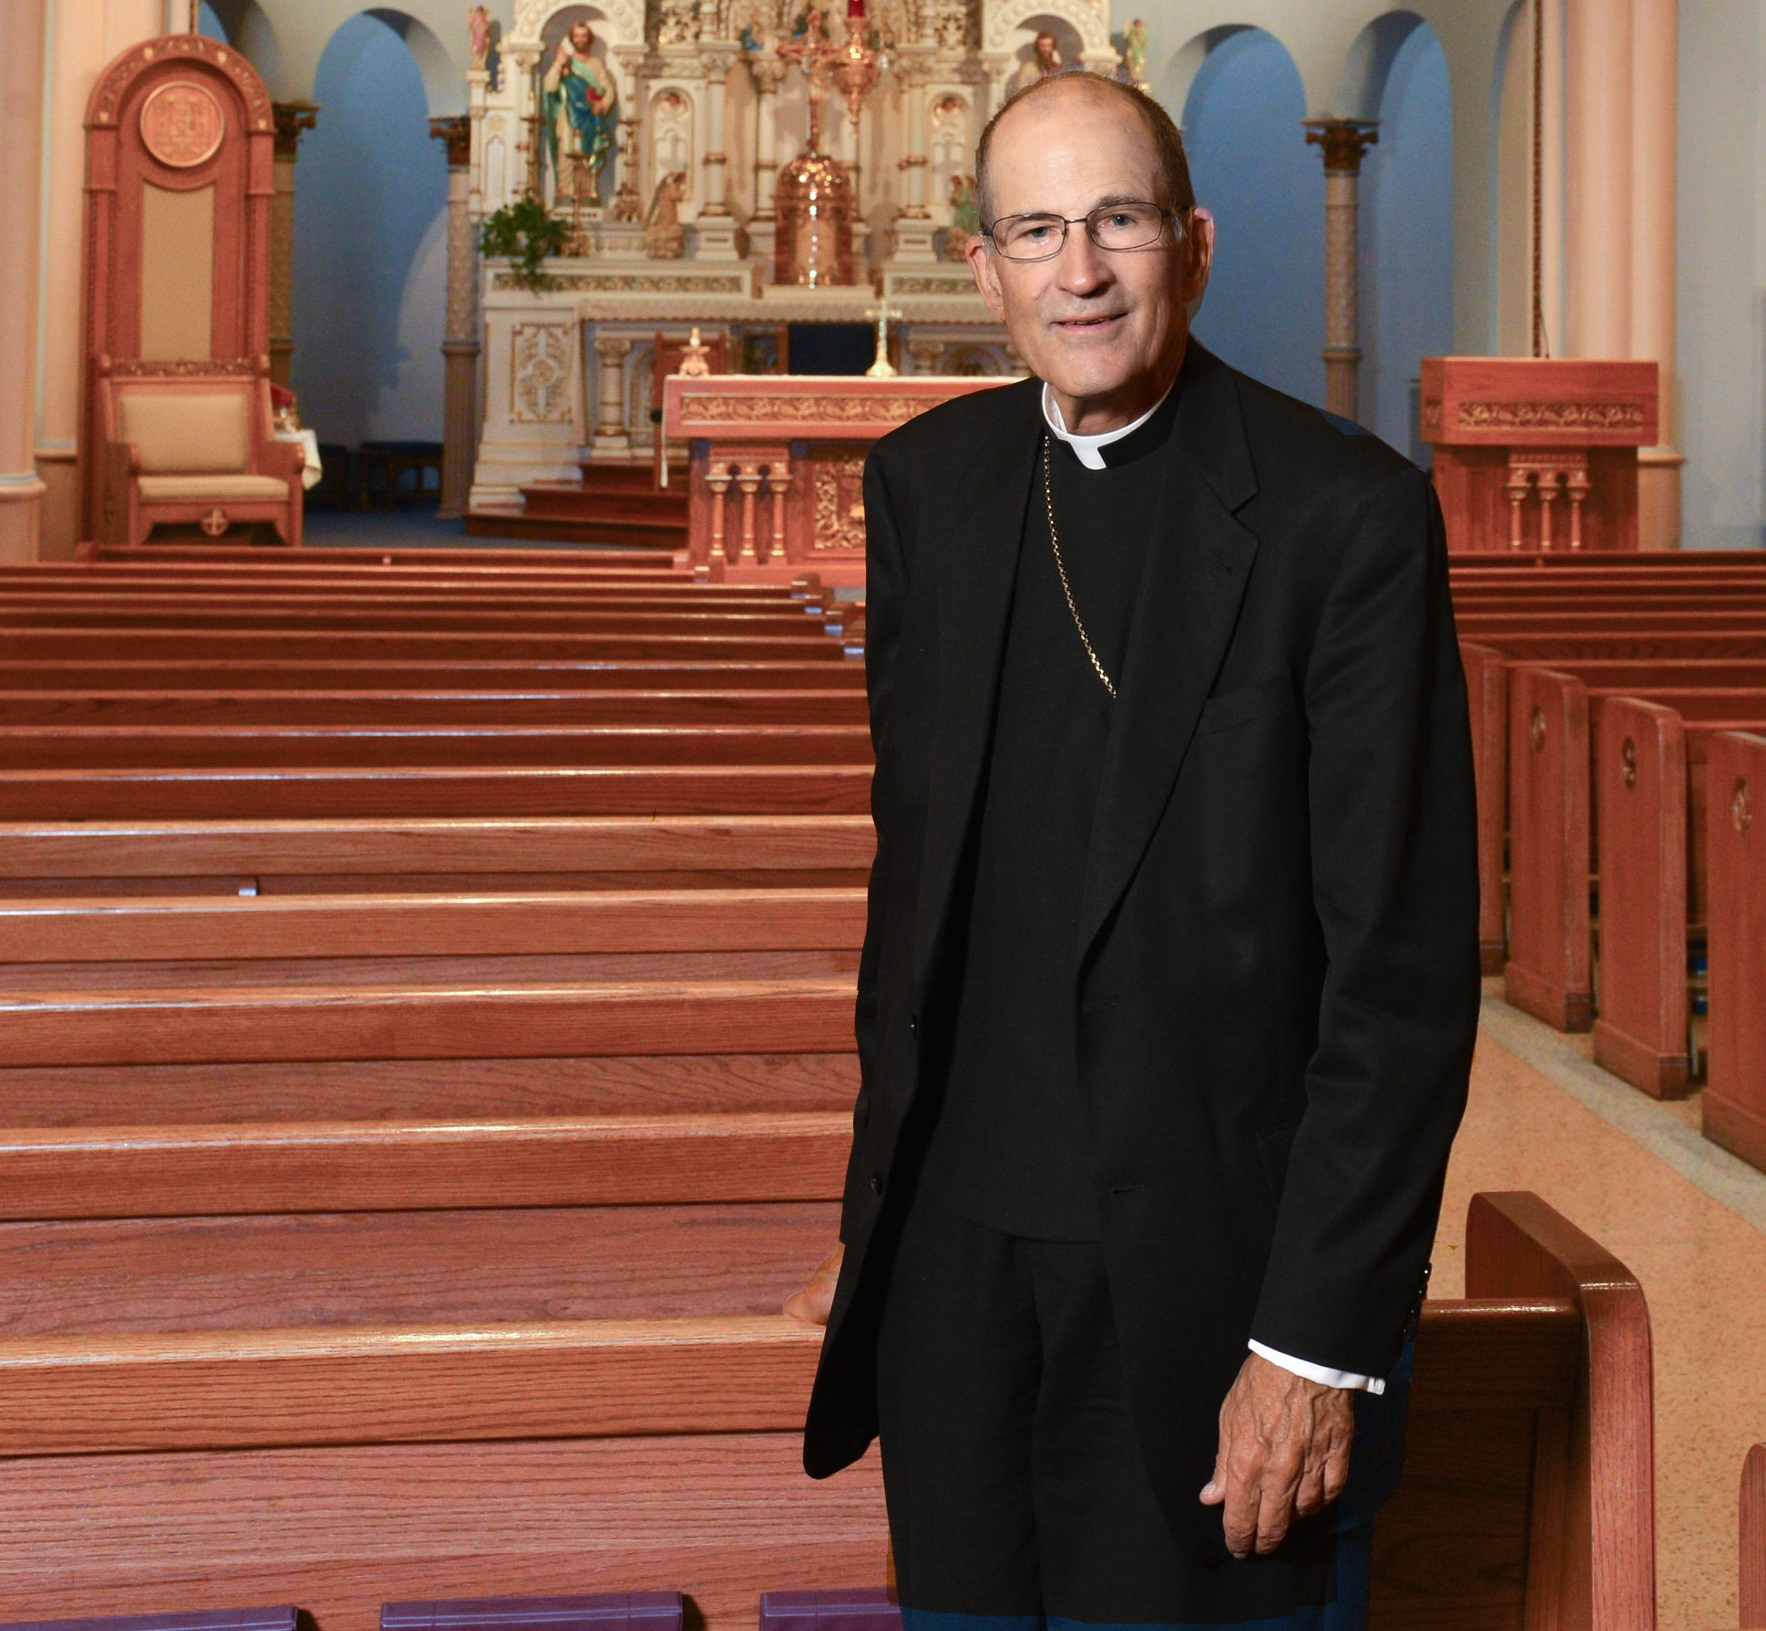 In the September 2019 edition of  The Prairie Catholic  Bishop LeVoir updates parishioners on two priorities/goals of the Diocese of New Ulm which are:  Chapter 11 Reorganization  and  Pastoral Planning.    (SEPTEMBER 2019 PRAIRIE CATHOLIC)